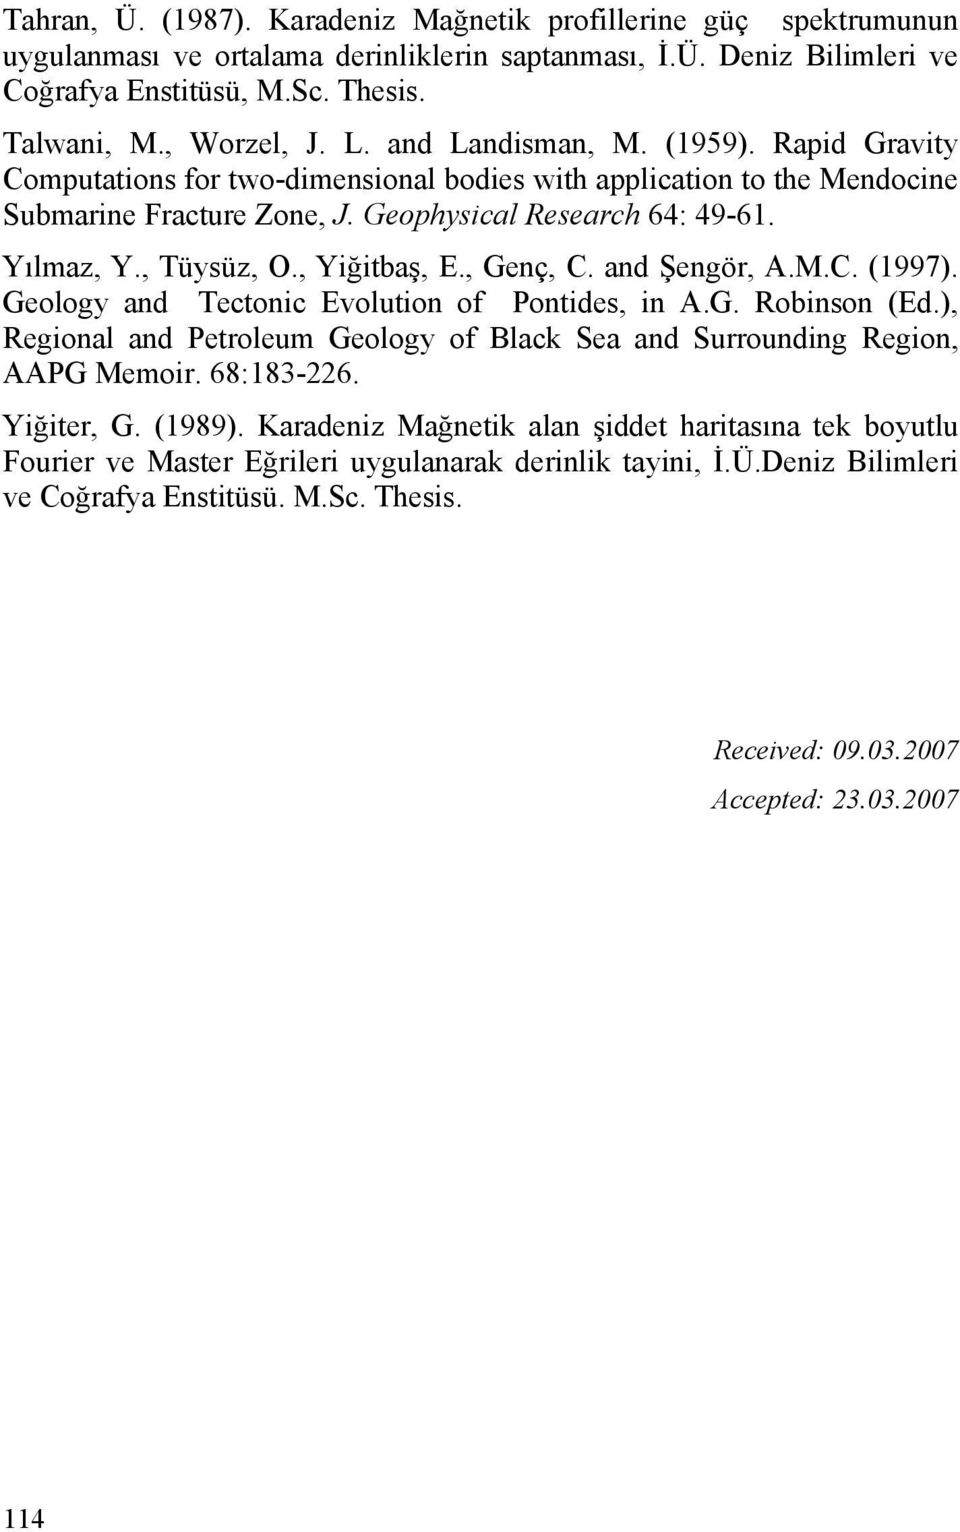 , Yiğitbaş, E., Genç, C. and Şengör, A.M.C. (1997). Geology and Tectonic Evolution of Pontides, in A.G. Robinson (Ed.), Regional and Petroleum Geology of Black Sea and Surrounding Region, AAPG Memoir.